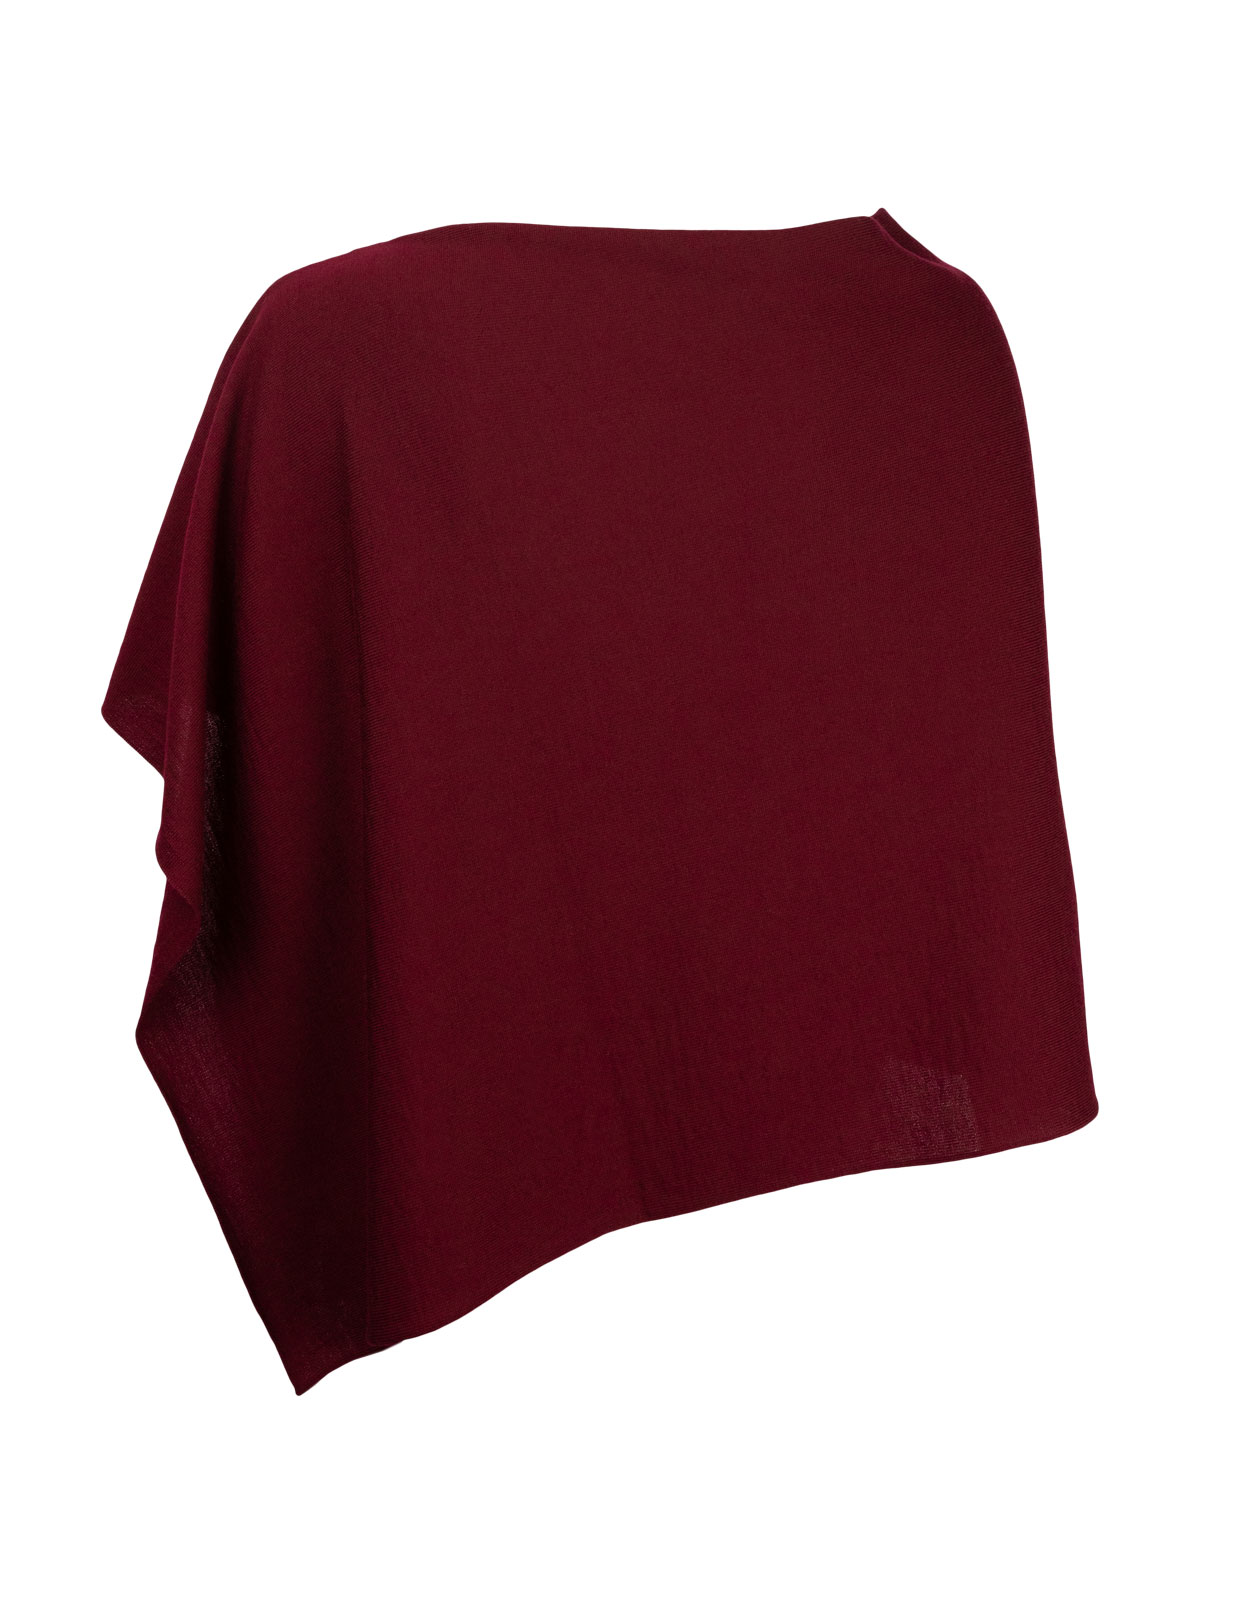 Cape Paris Burgundy